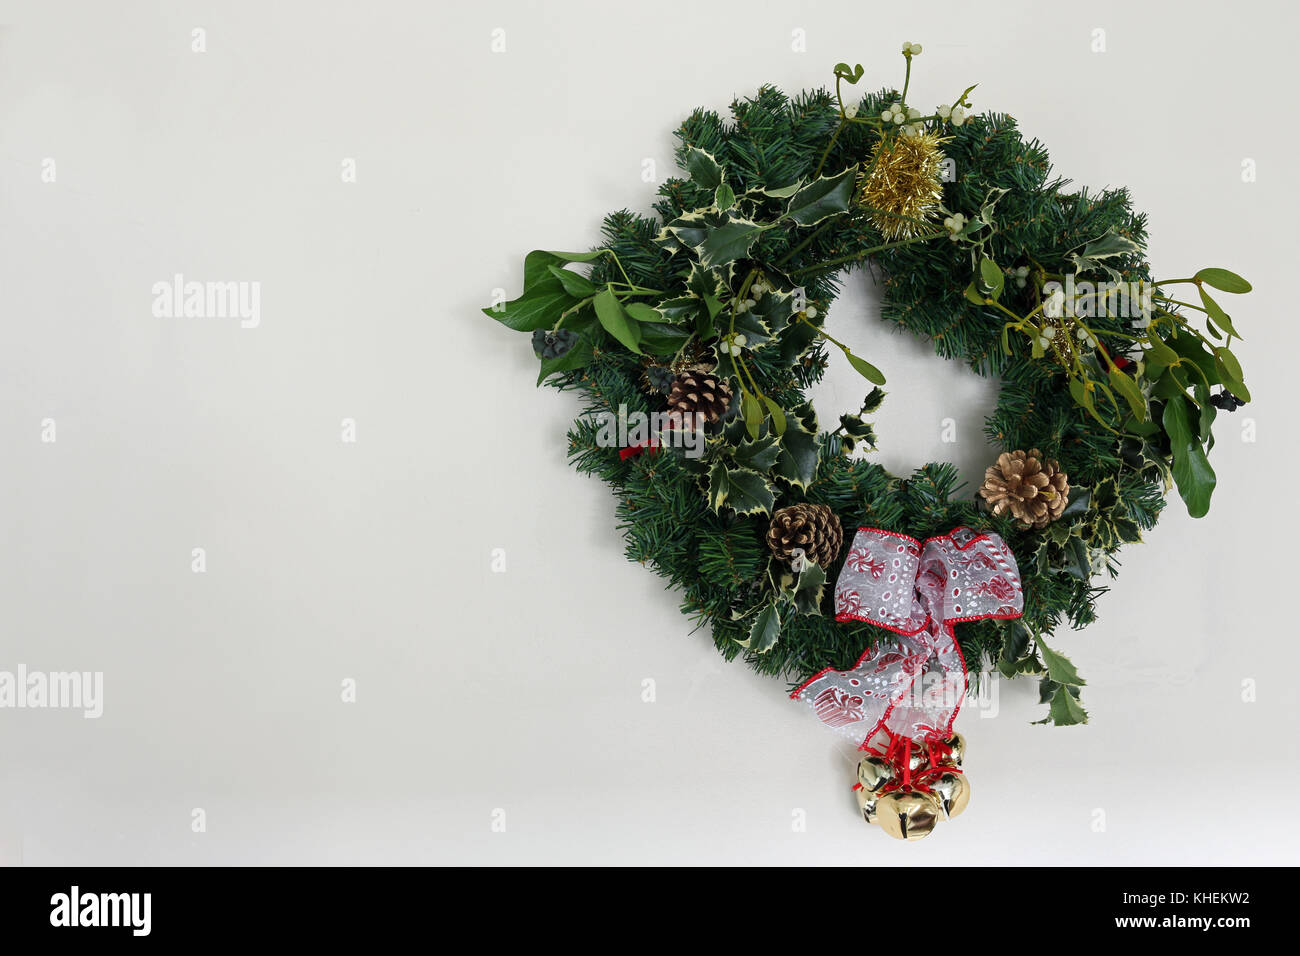 Home Made Christmas Wreath With Holly Mistletoe Pine Cones Ivy Tinsel